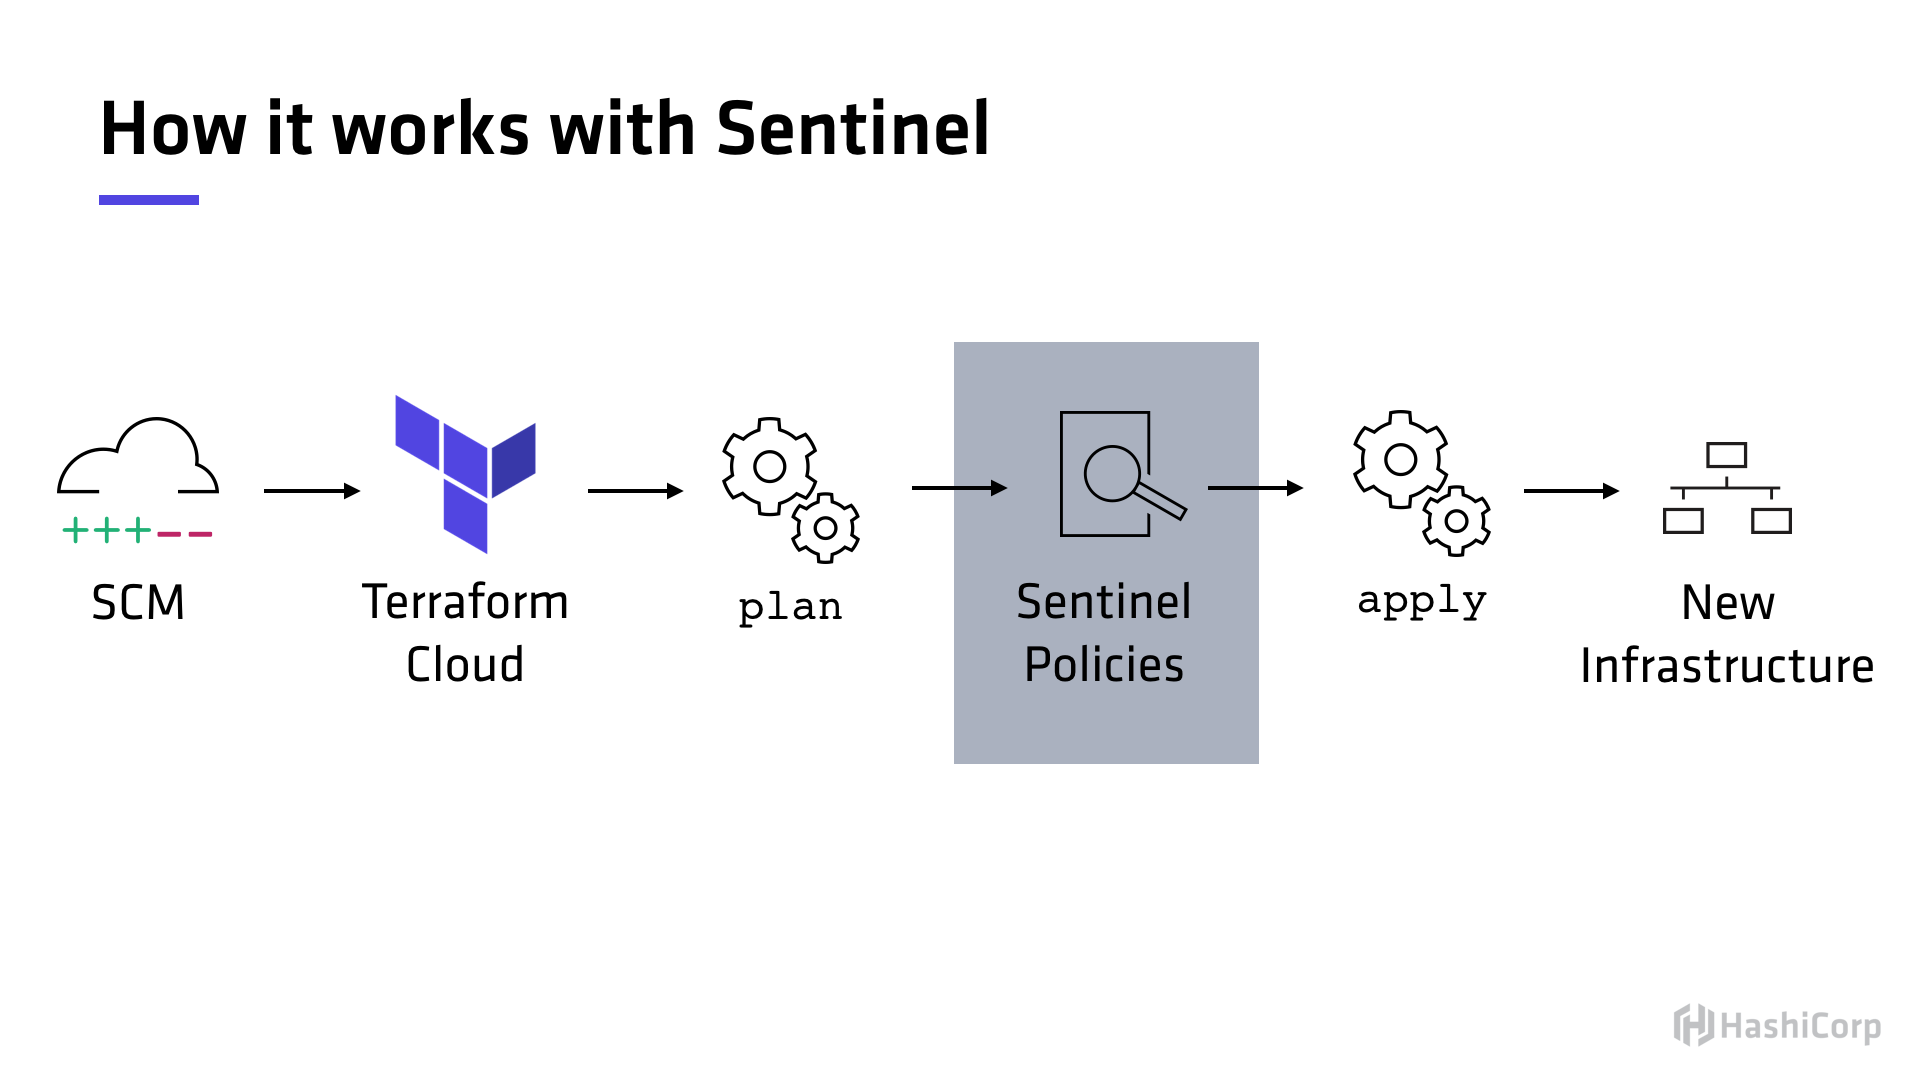 A workflow with Sentinel